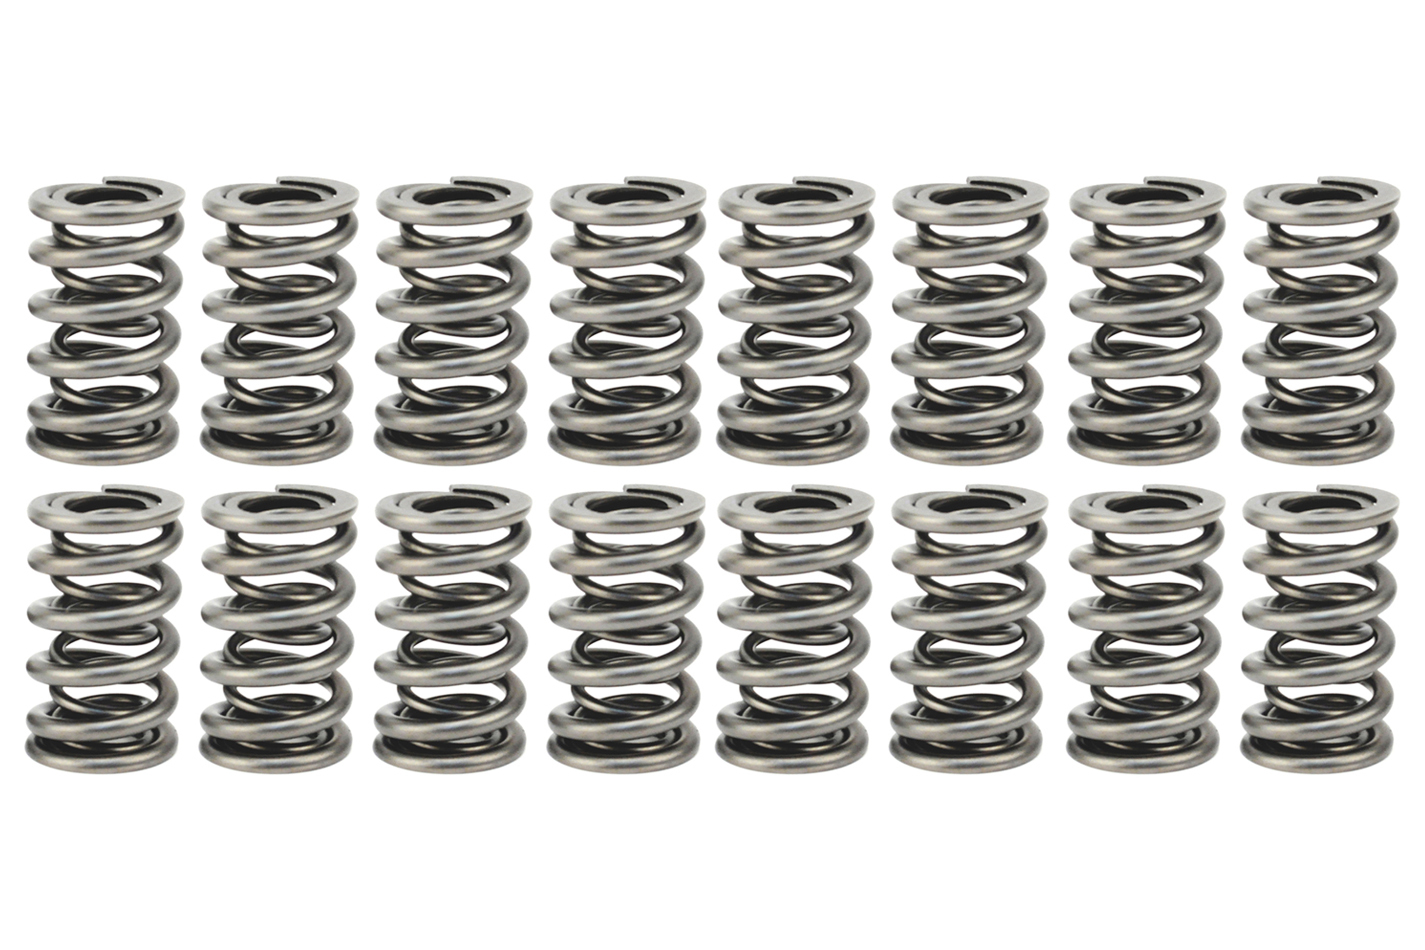 Comp Cams 26547-16 Valve Spring, Dual Spring, 583 lb/in Spring Rate, 1.190 in Coil Bind, 1.550 in OD, Set of 16